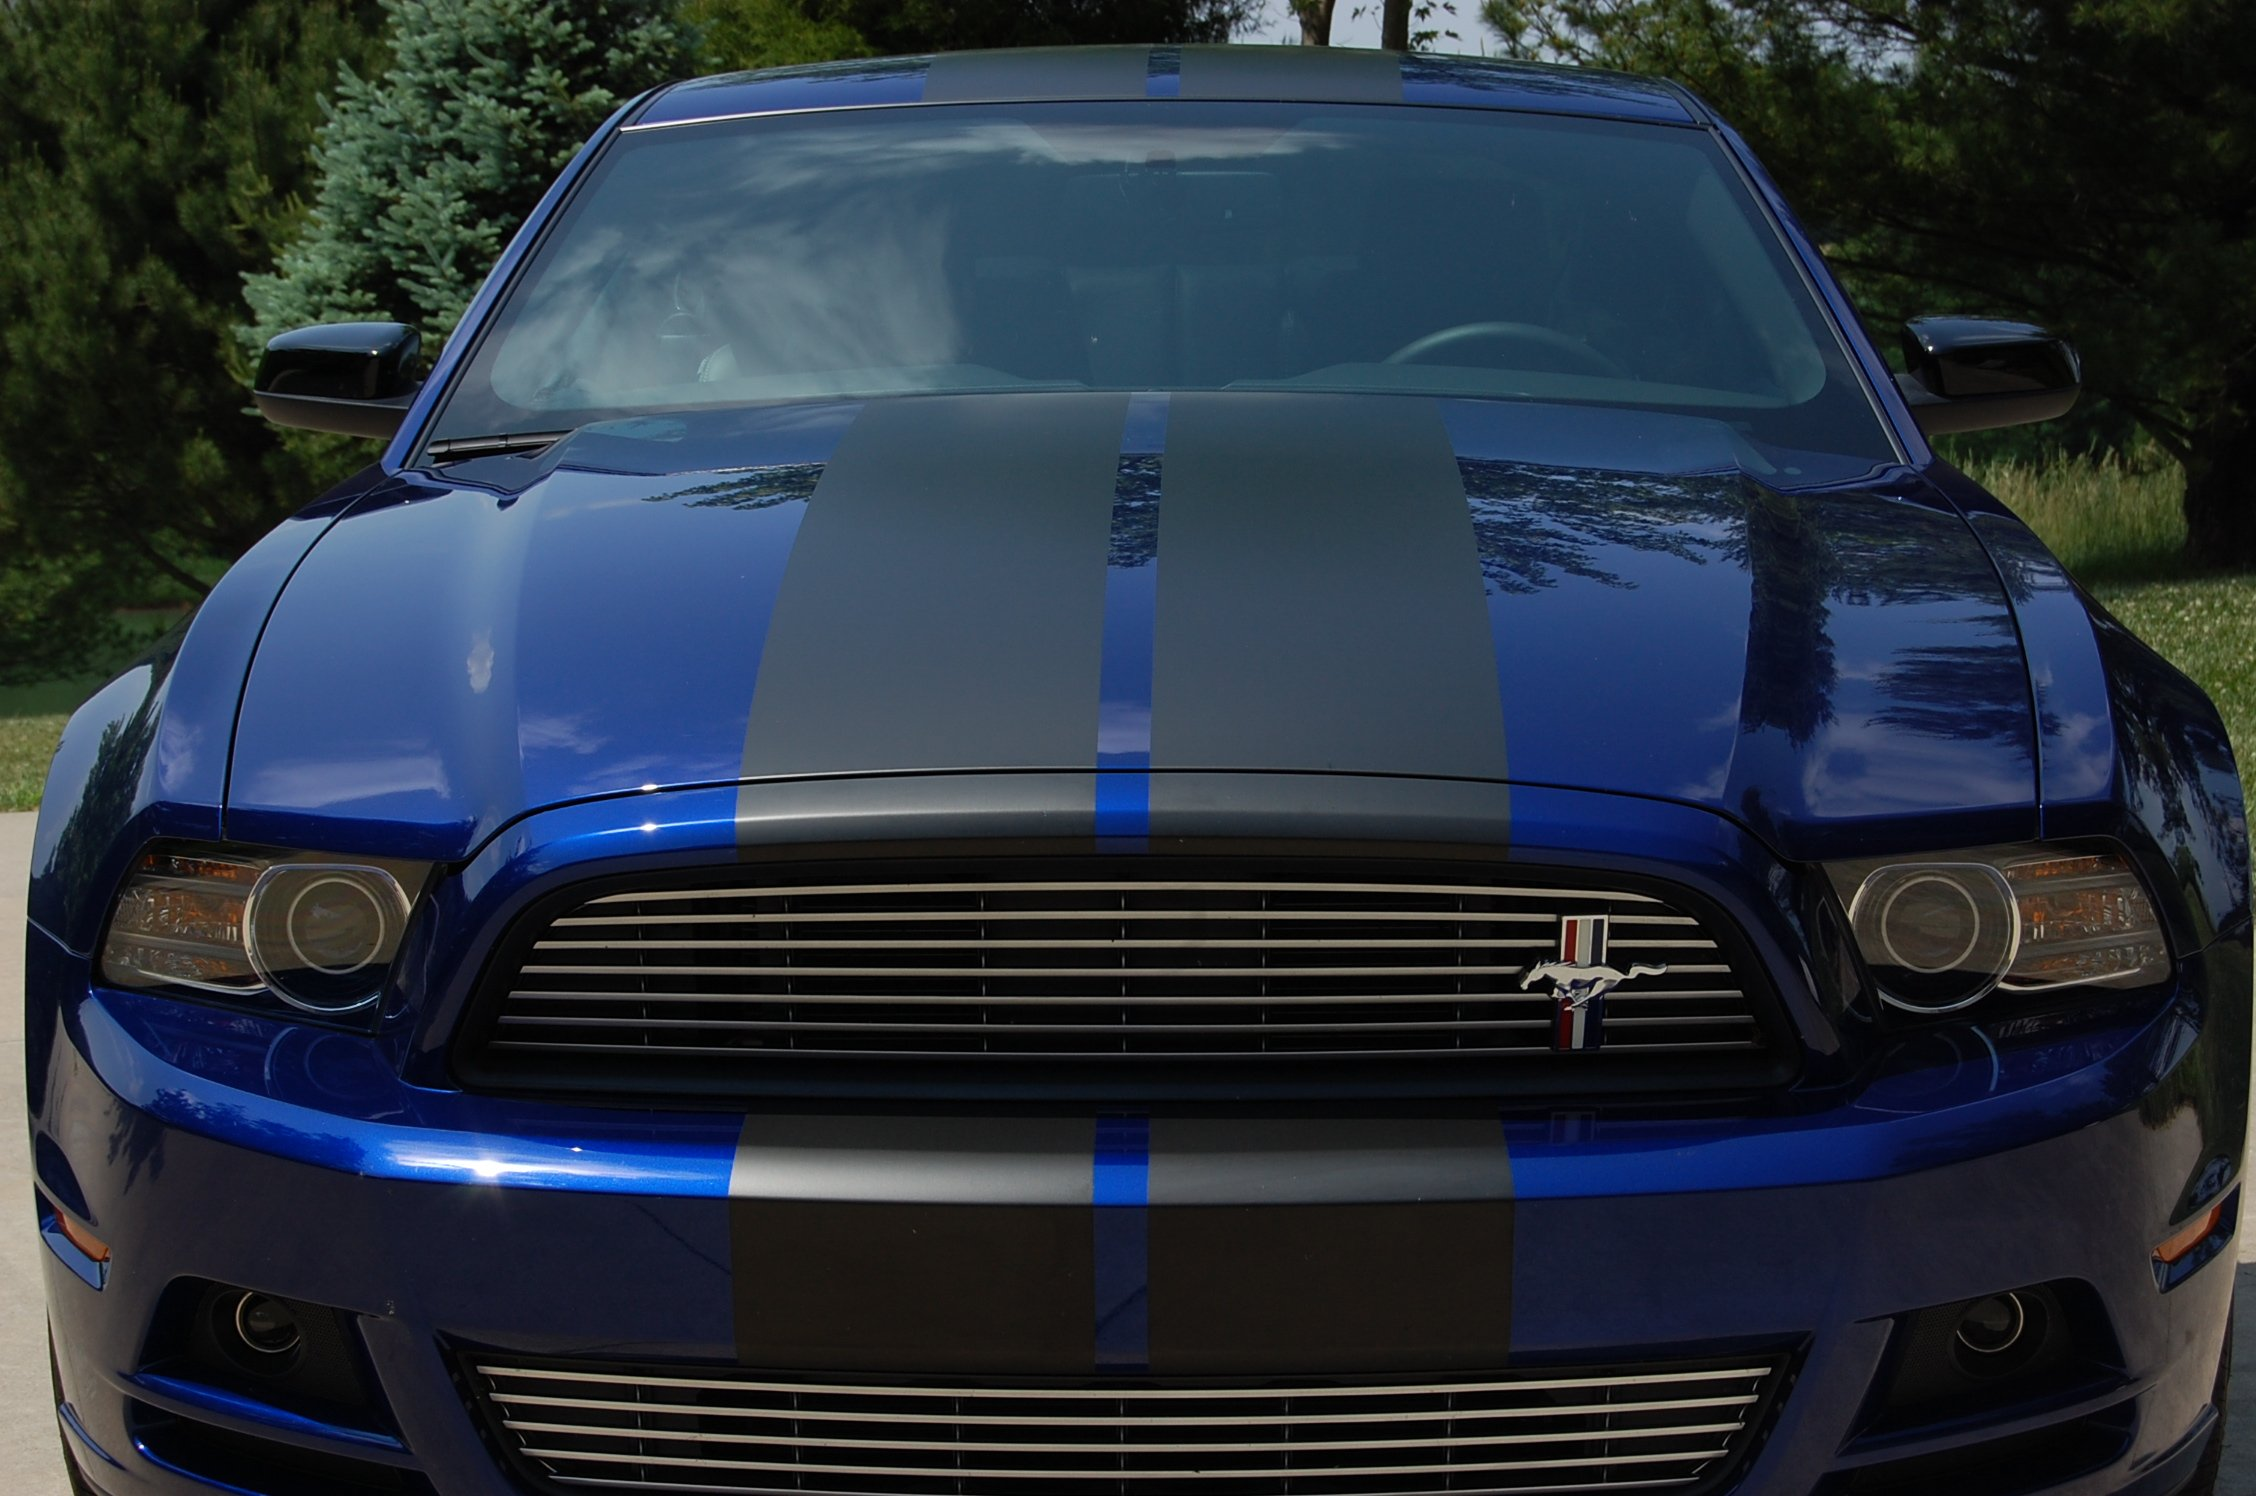 Ford Mustang Build >> Post your Deep Impact Blue ( DIB ) pics here! - Ford Mustang Forum